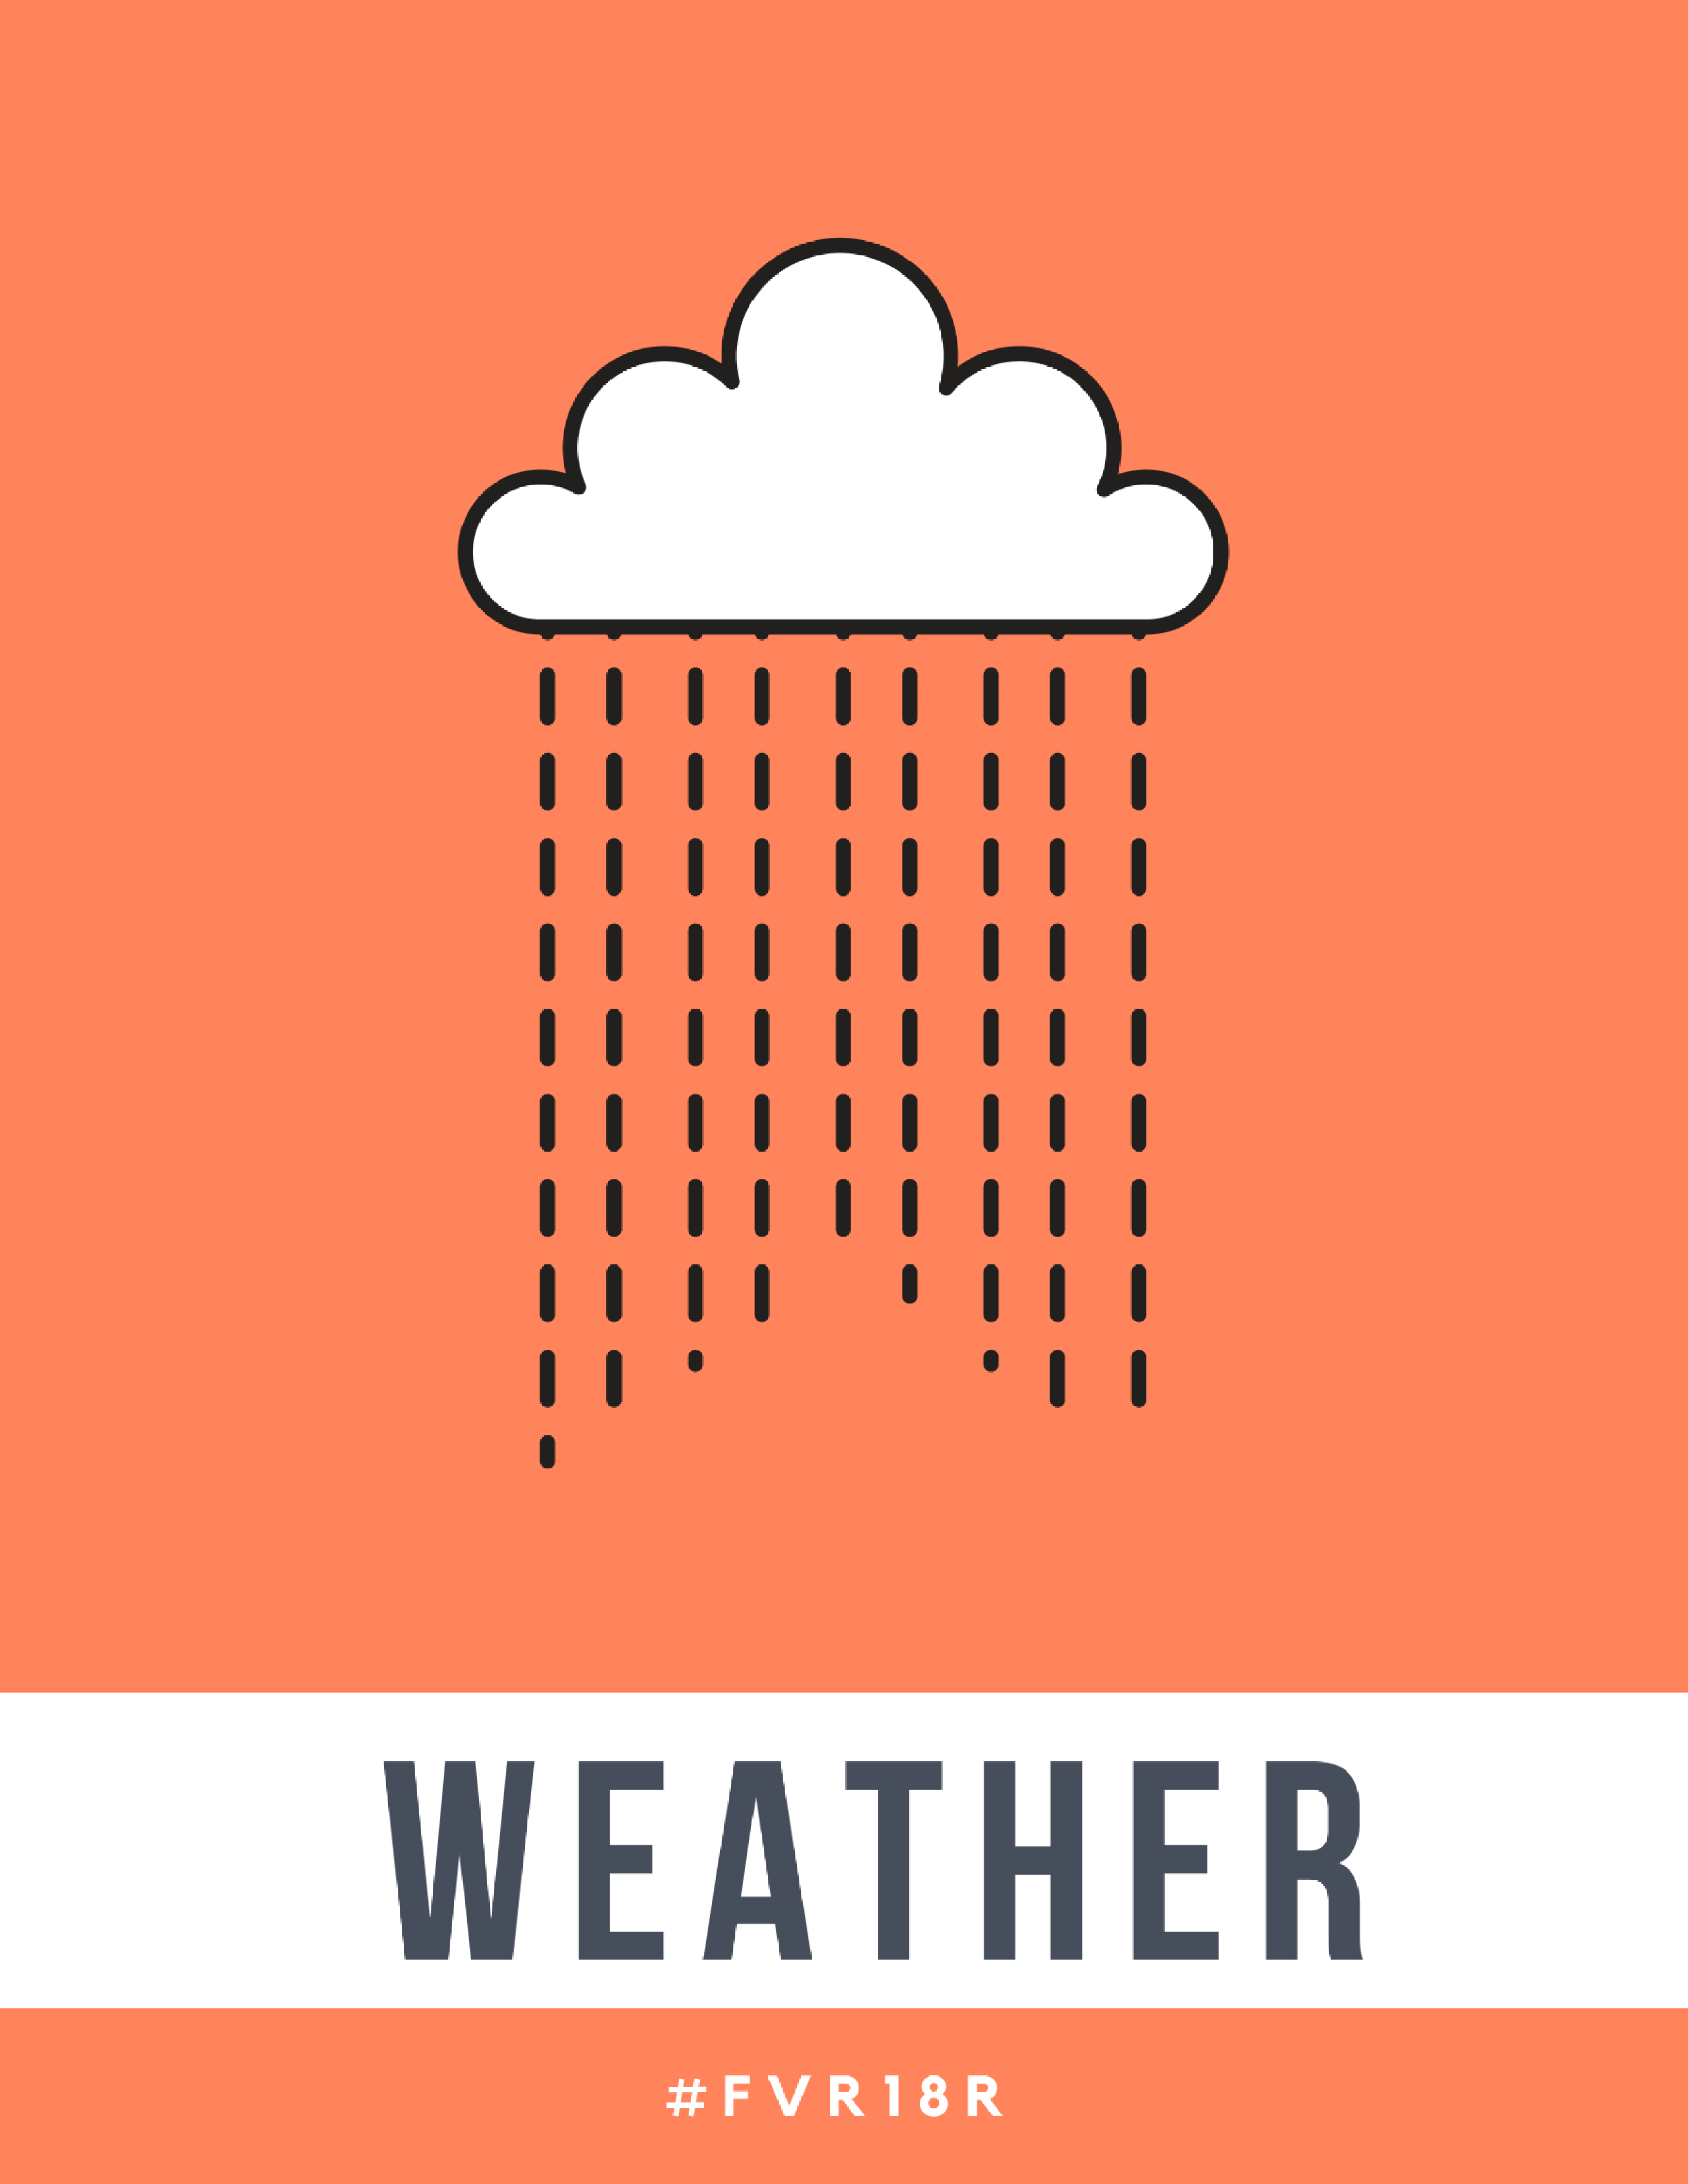 K-2 Library Signage, Weather